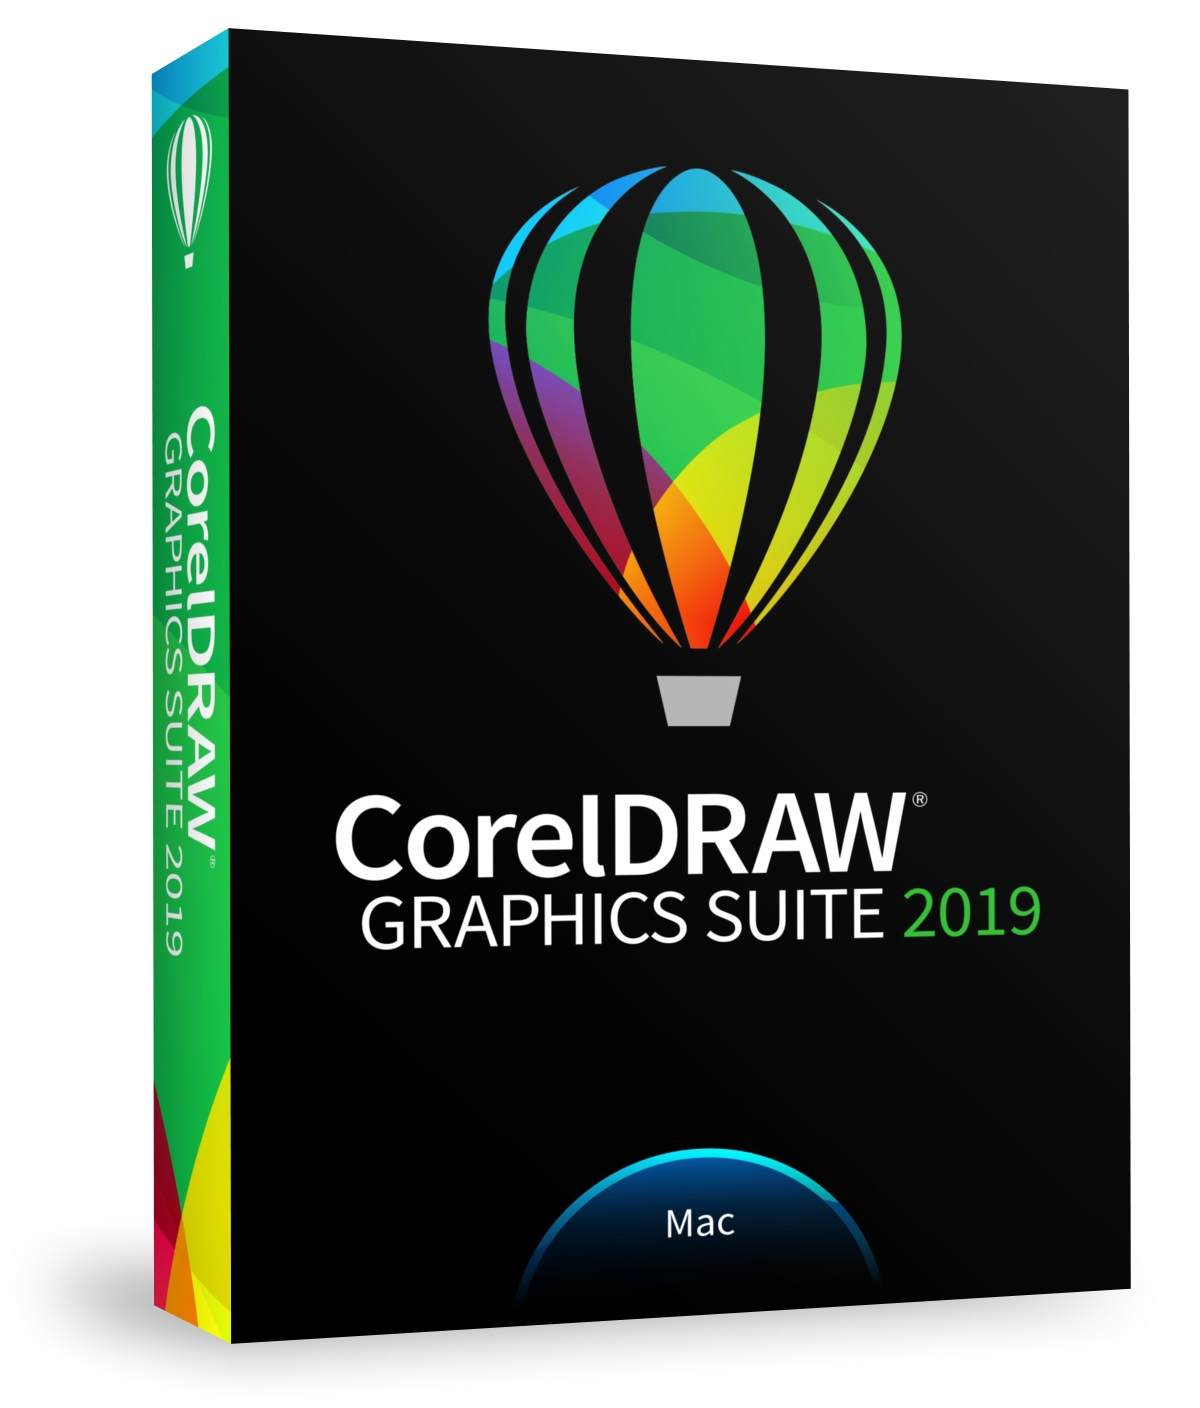 CorelDRAW Graphics Suite 2019 Mac, Multilingual